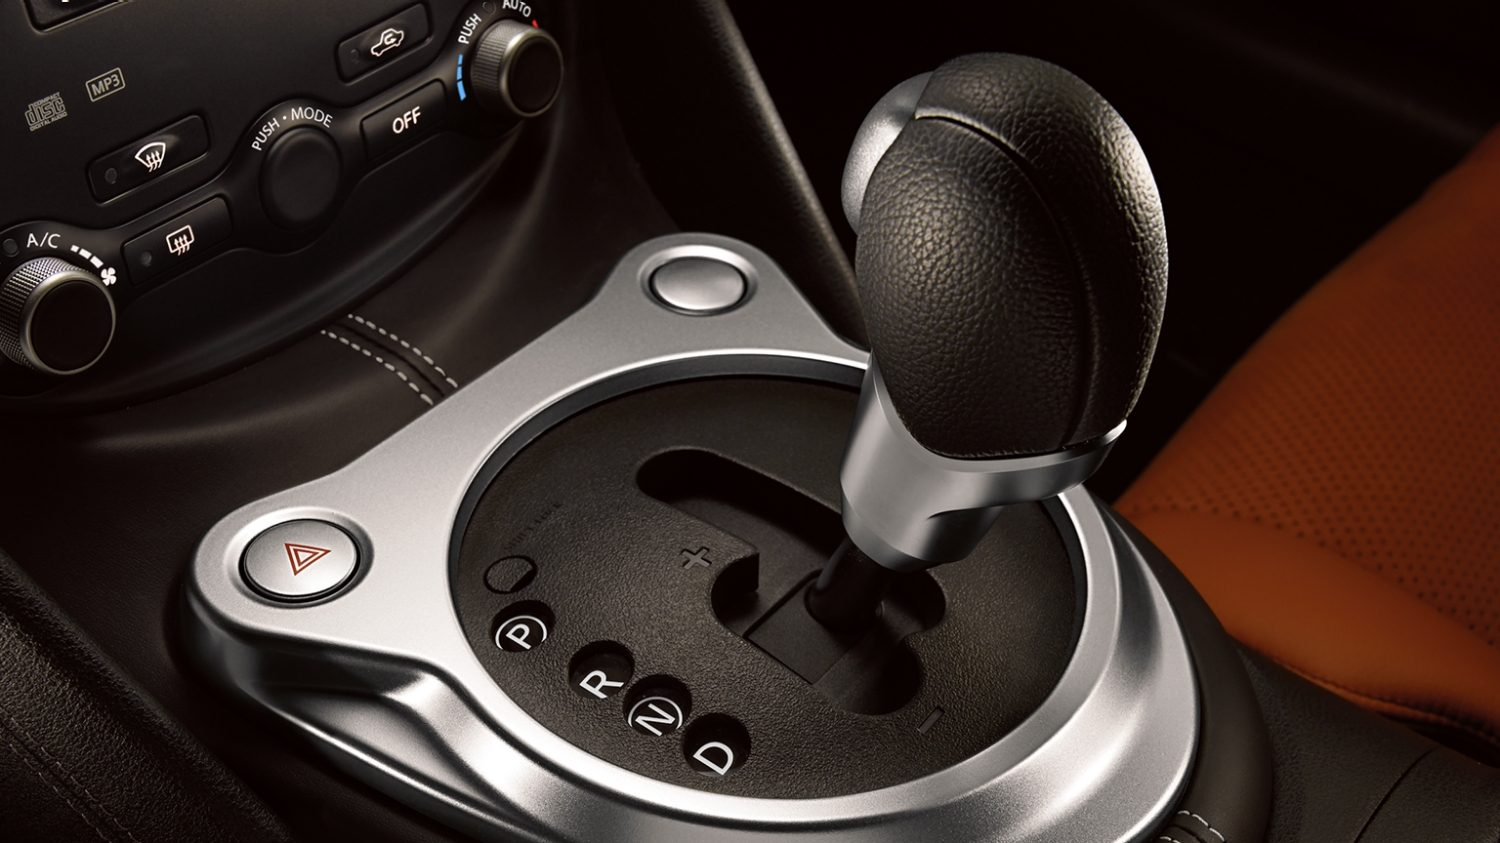 Nissan 370Z 7-speed automatic transmission